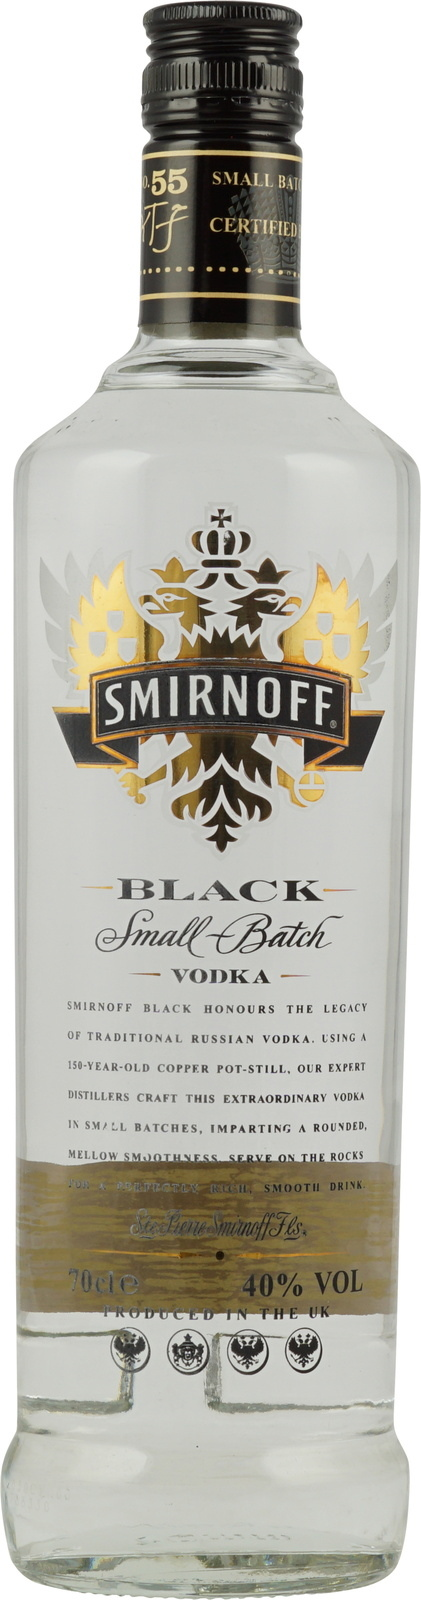 smirnoff vodka black label 0 7 liter 40 vol ber 110. Black Bedroom Furniture Sets. Home Design Ideas